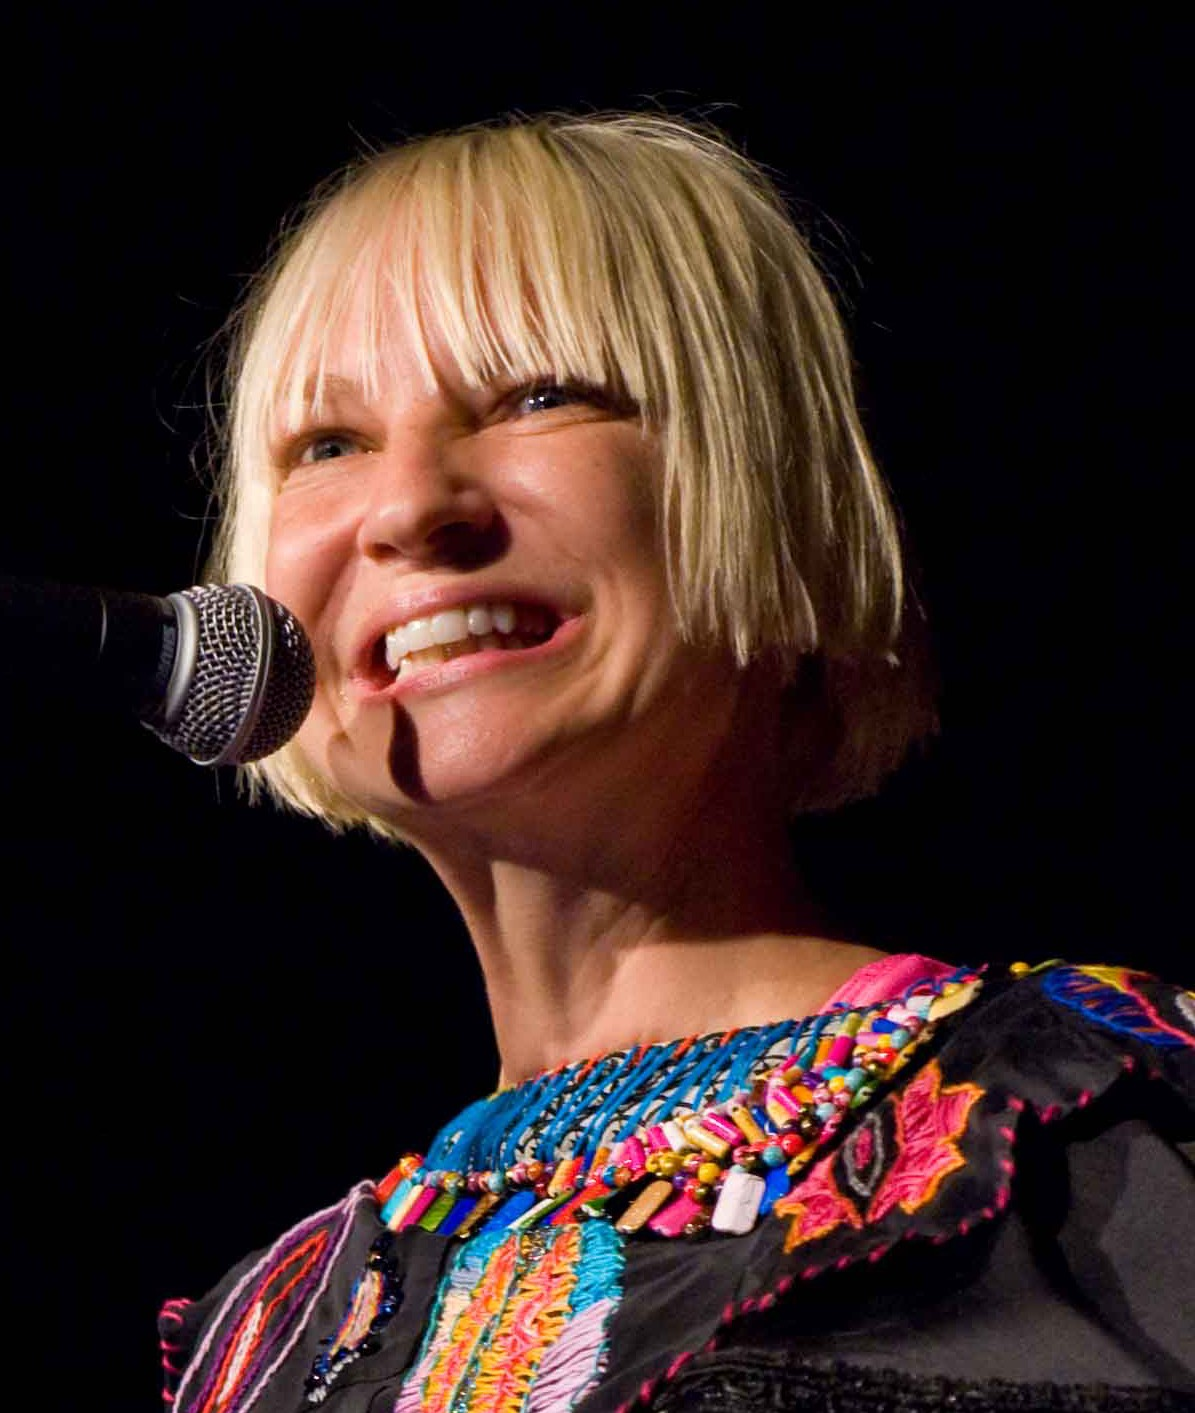 How tall is Sia?